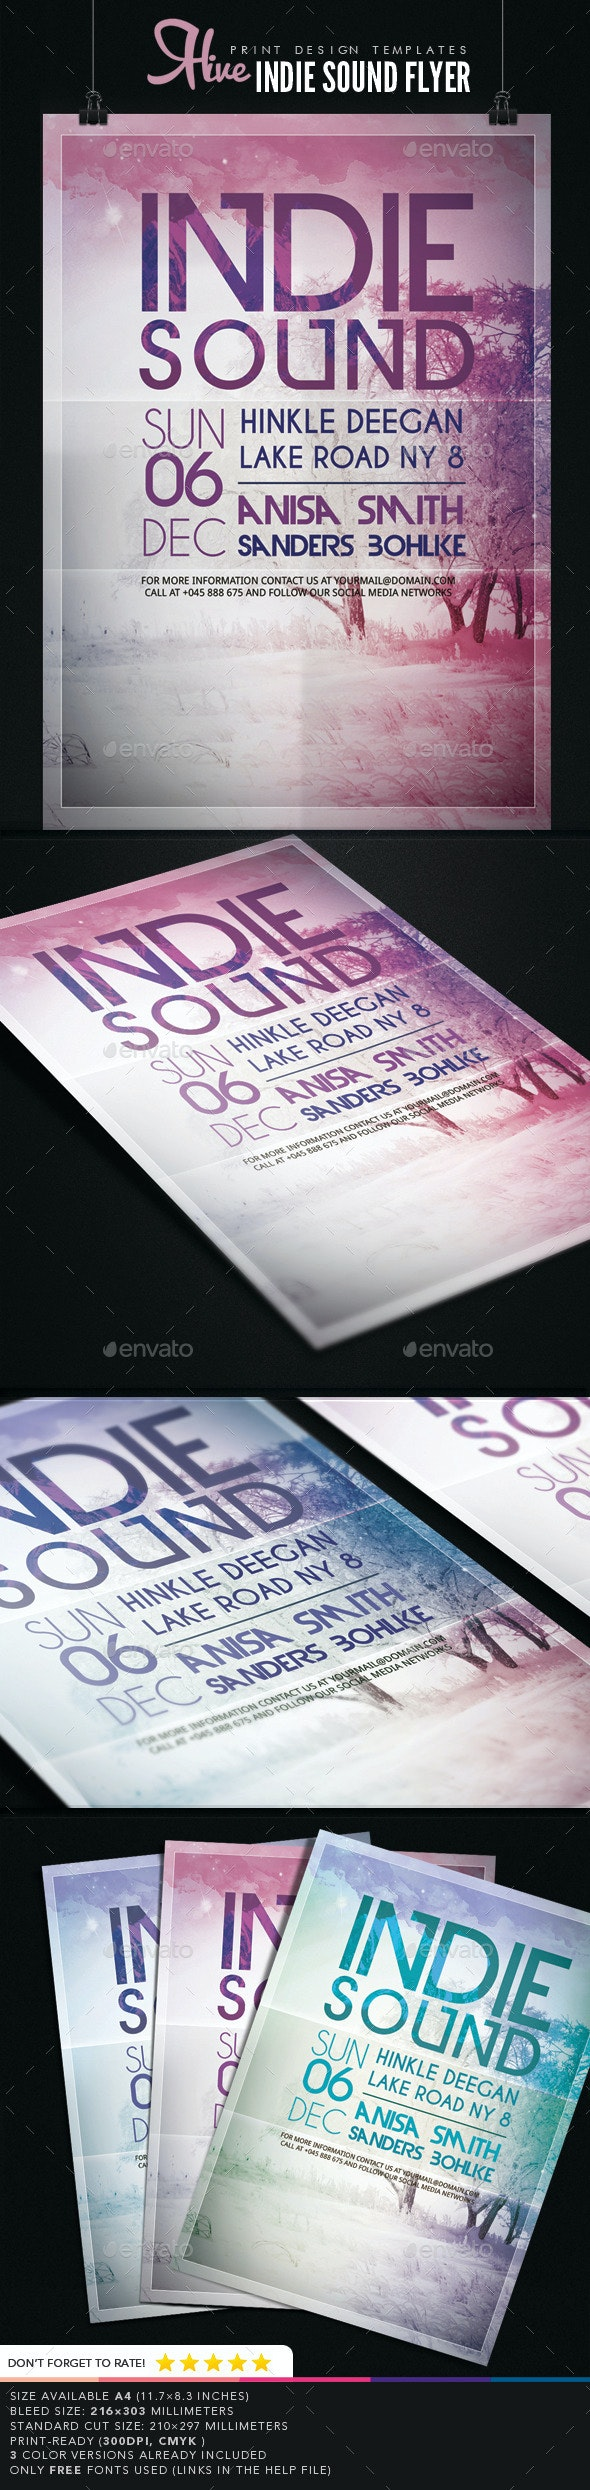 Indie Sound Flyer  - Events Flyers